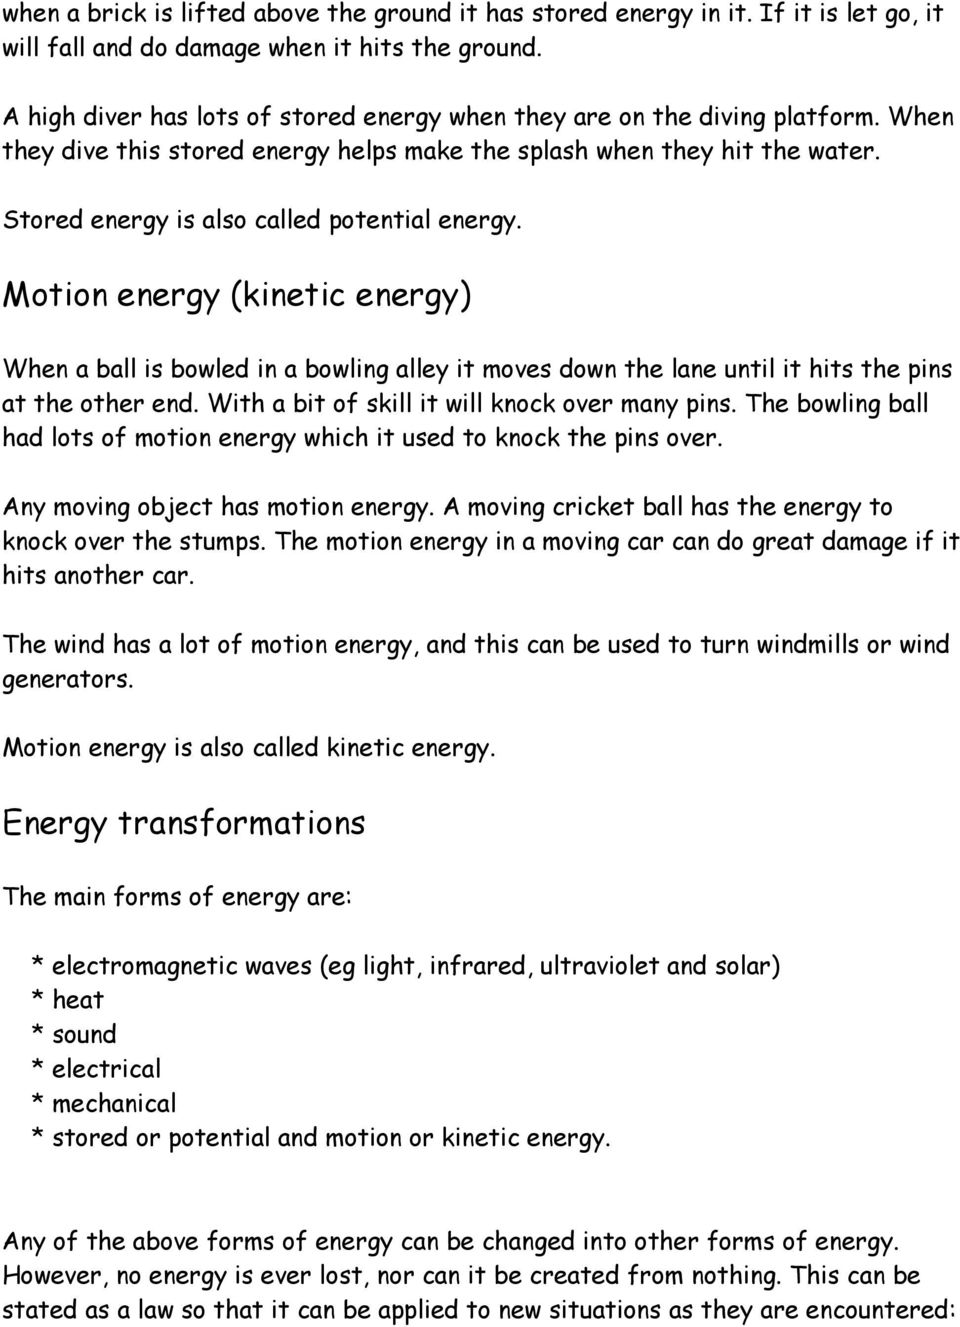 Stored energy is also called potential energy. Motion energy (kinetic energy) When a ball is bowled in a bowling alley it moves down the lane until it hits the pins at the other end.